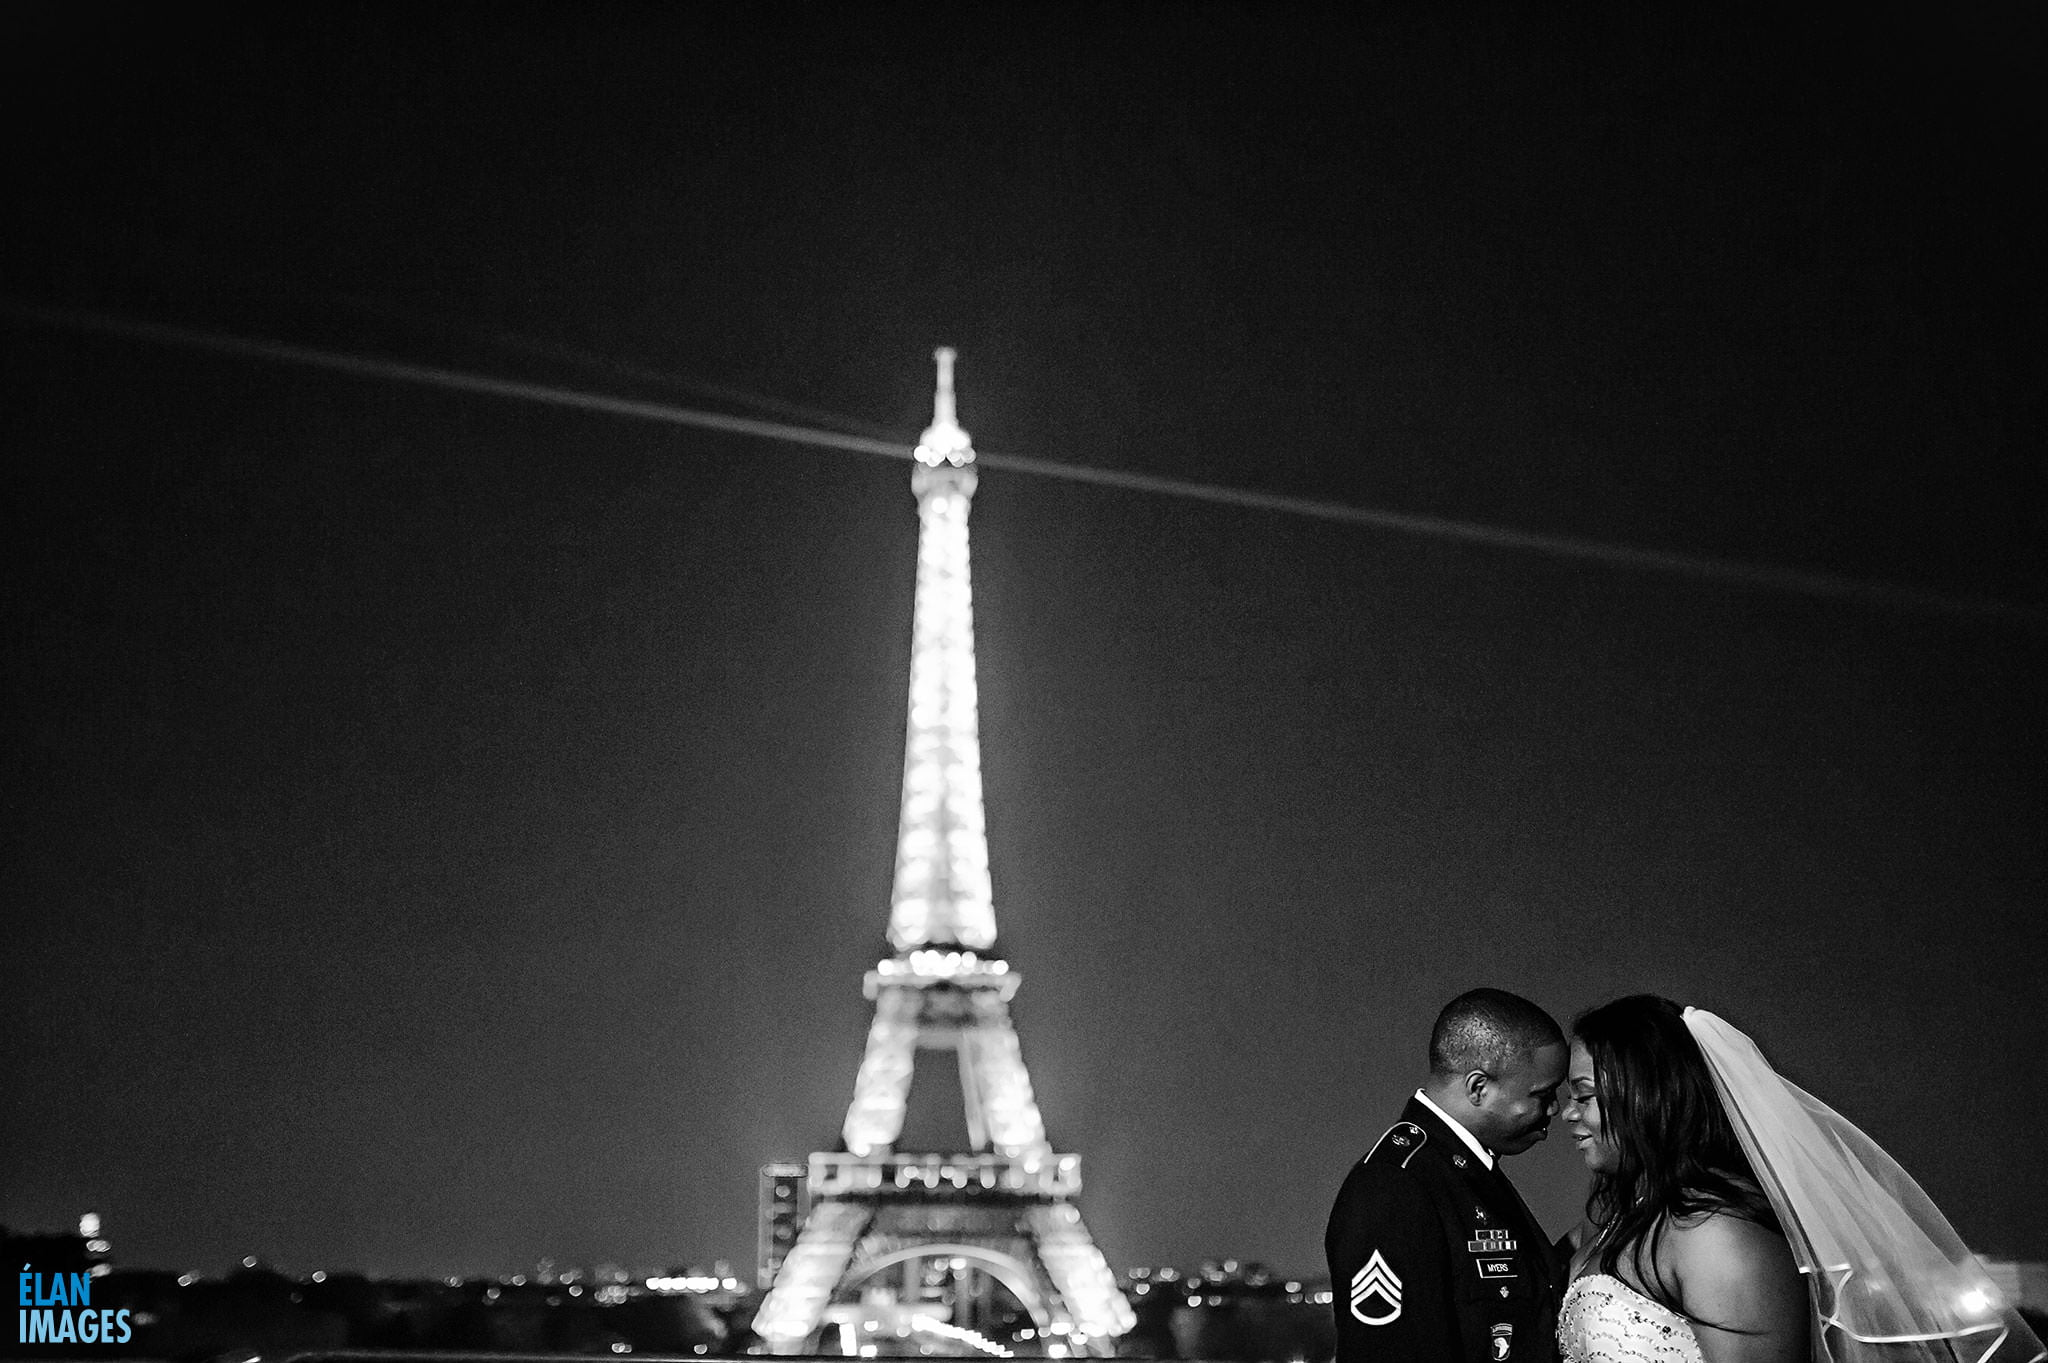 The end of a long day - the bride and groom relax and enjoy the evening light show on the Eiffel Tower, after getting married at the American Church in Paris, France.